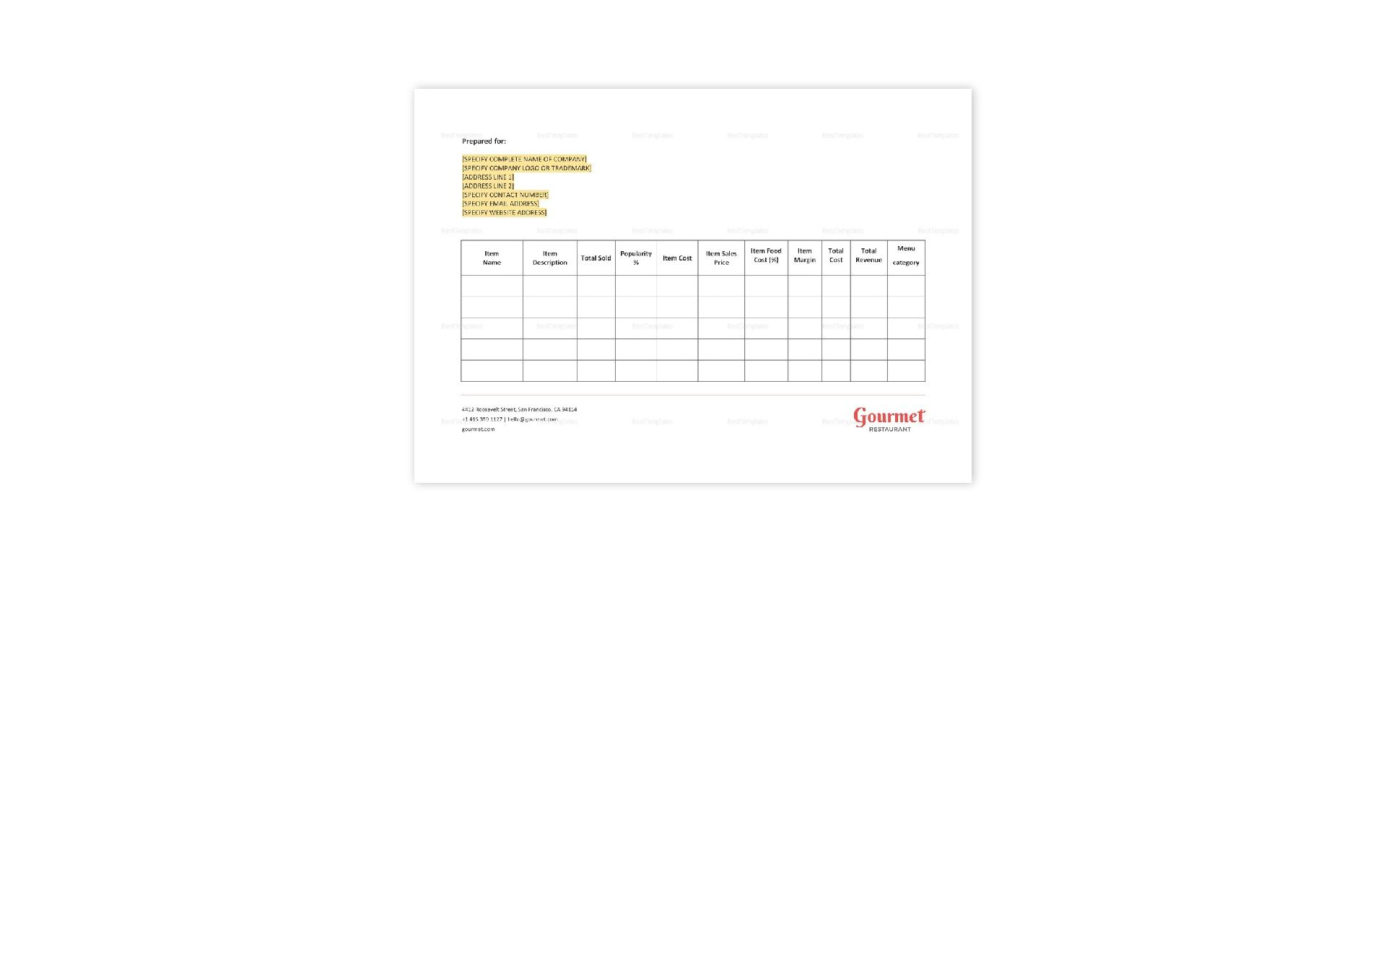 Menu & Recipe Cost Spreadsheet Template For Restaurant Menu  Recipe Cost Spreadsheet Template In Word, Apple Pages